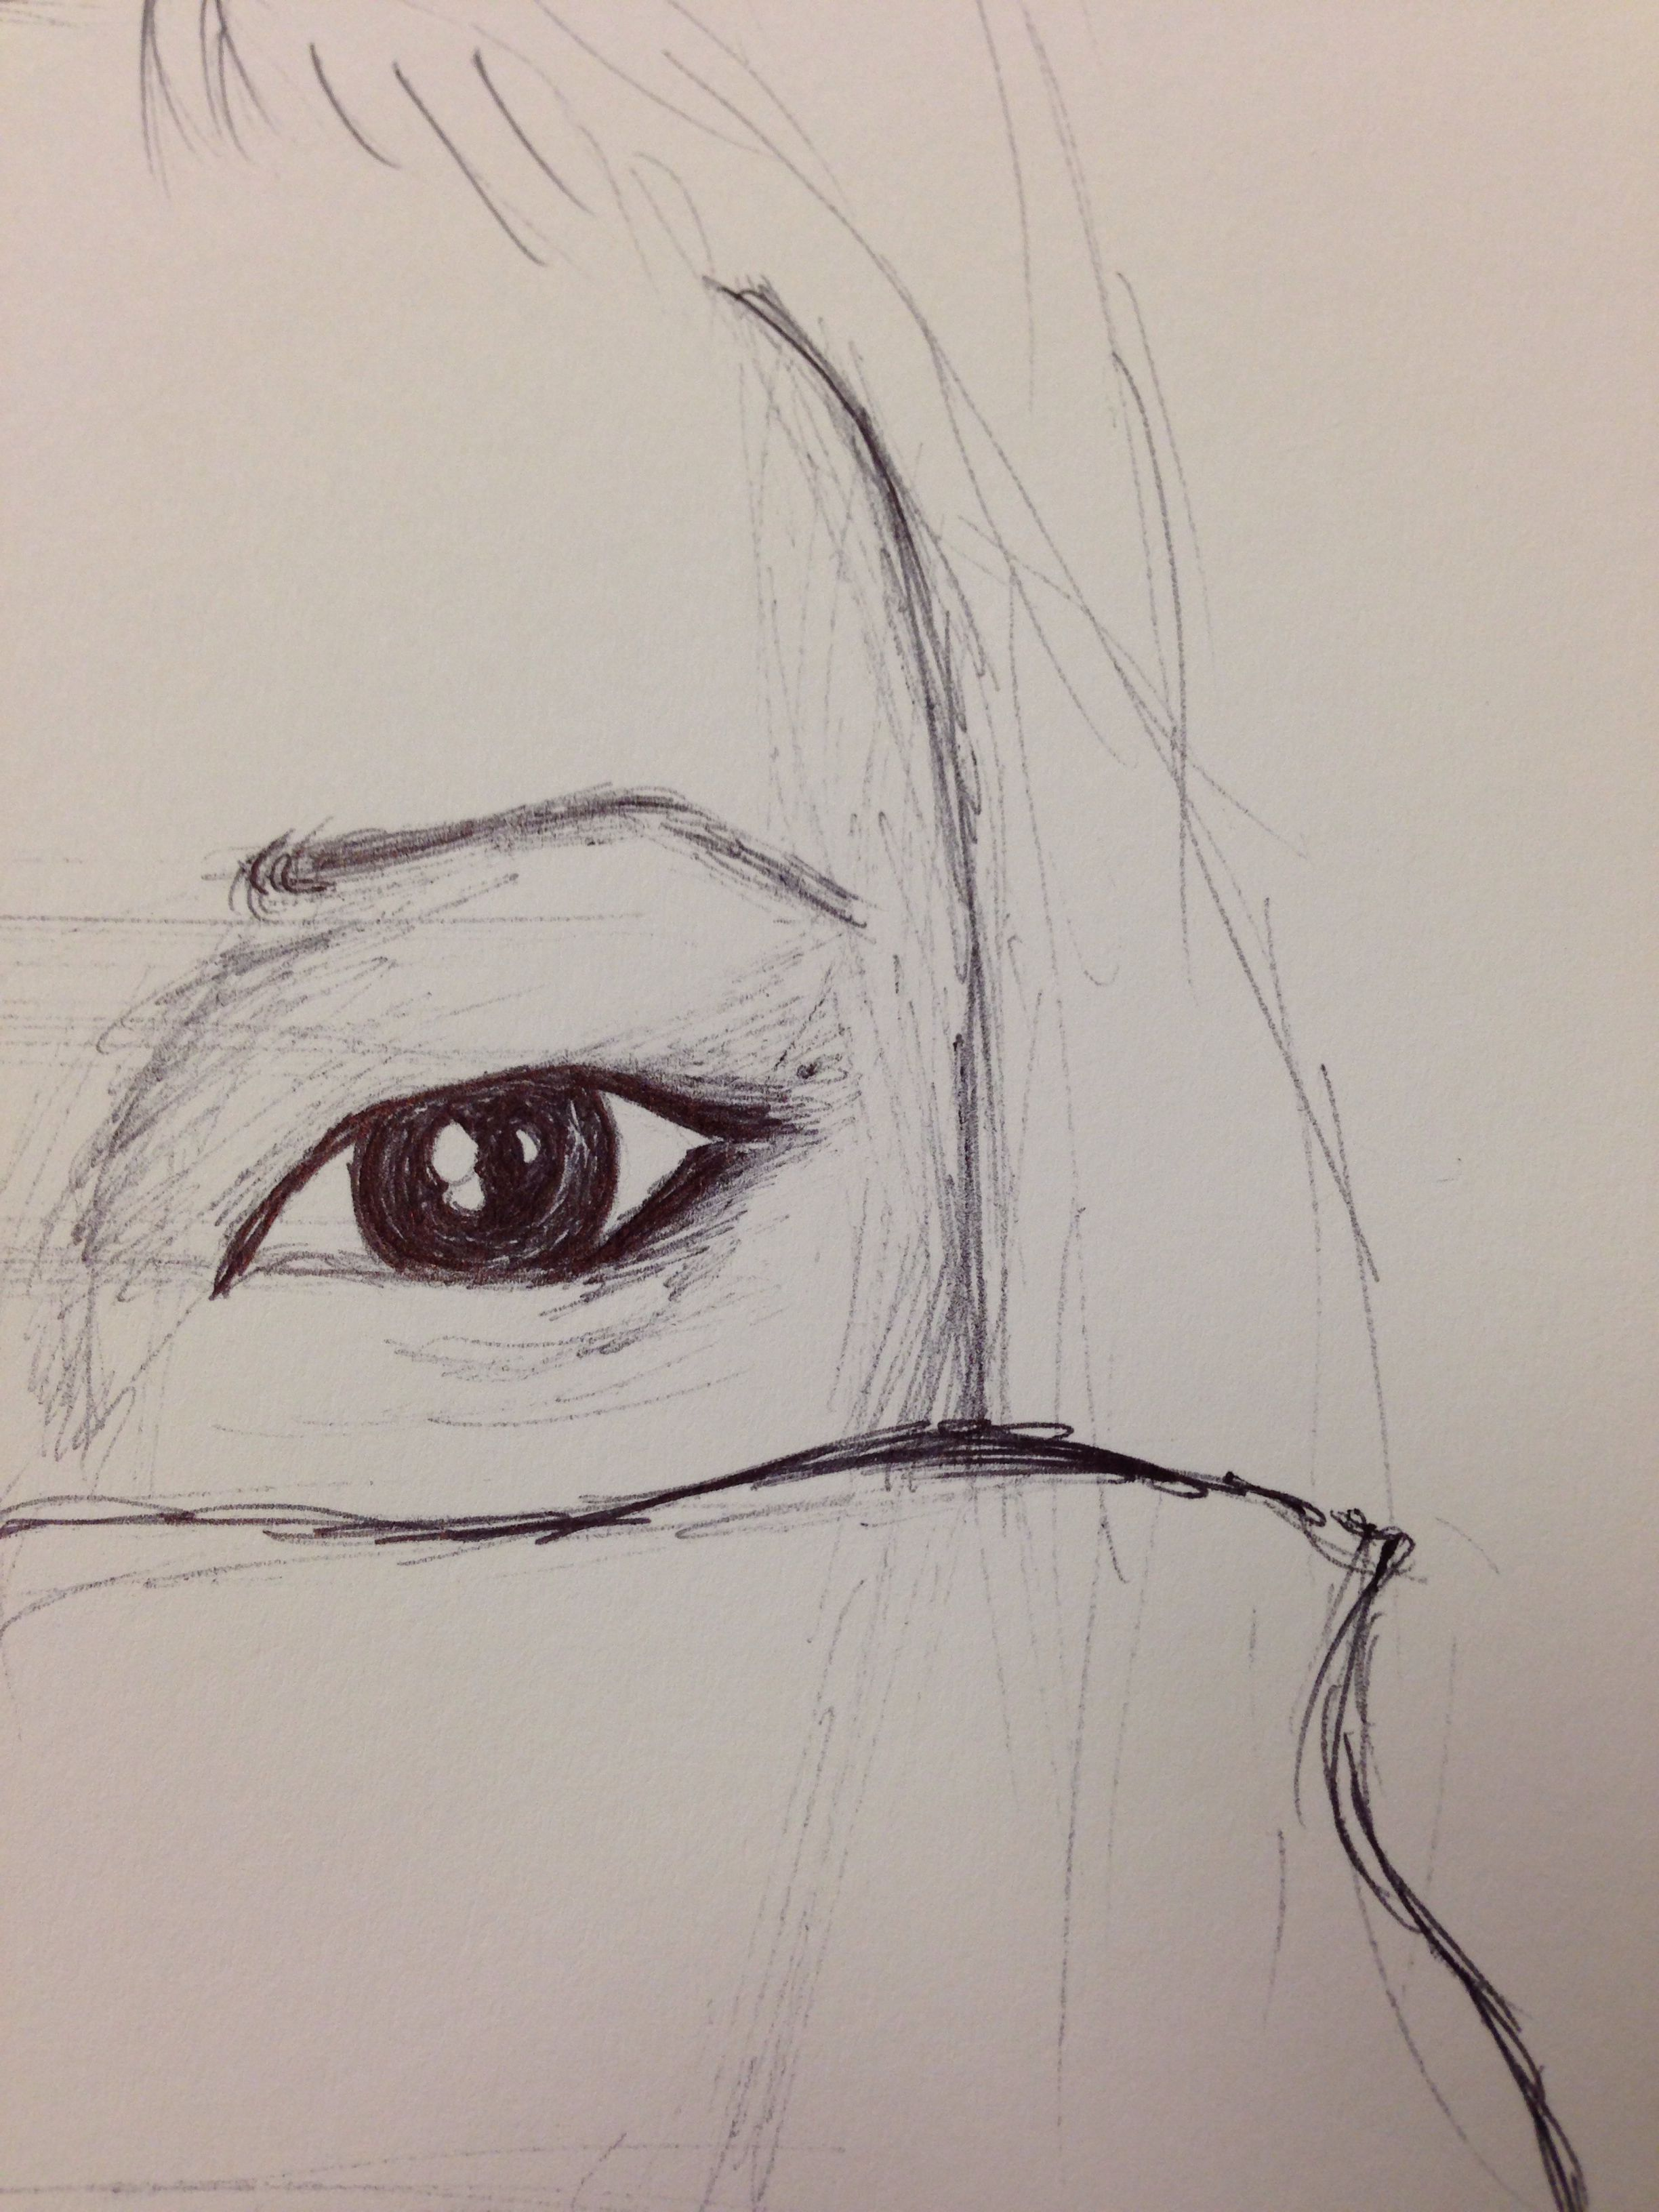 Back to sketching and feeling great! By Farly Creates